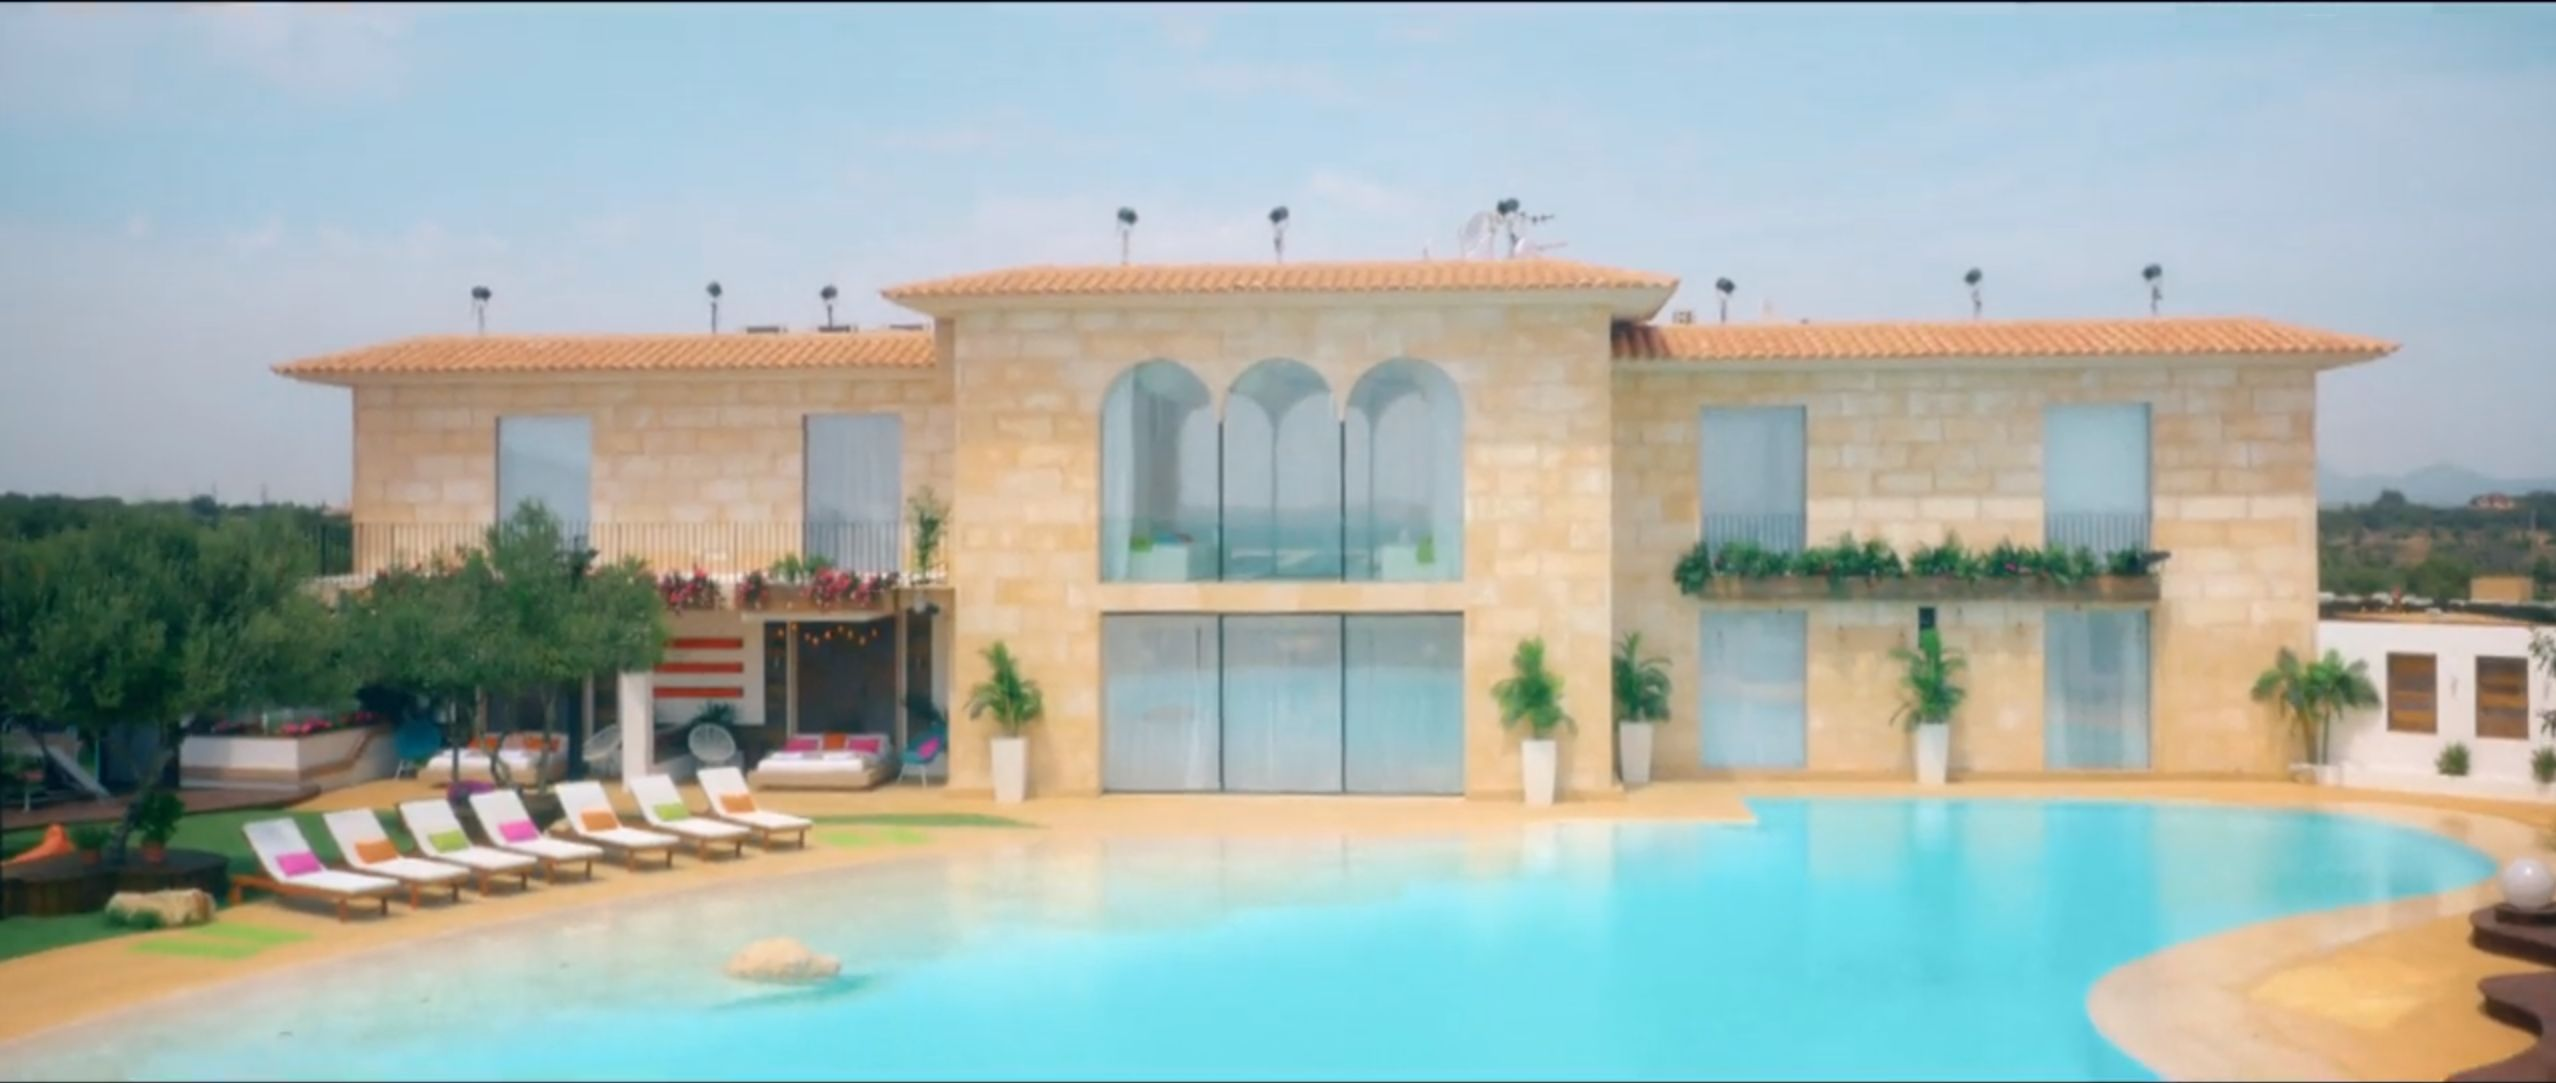 This Is What The Old Love Island Villa Looked Like From